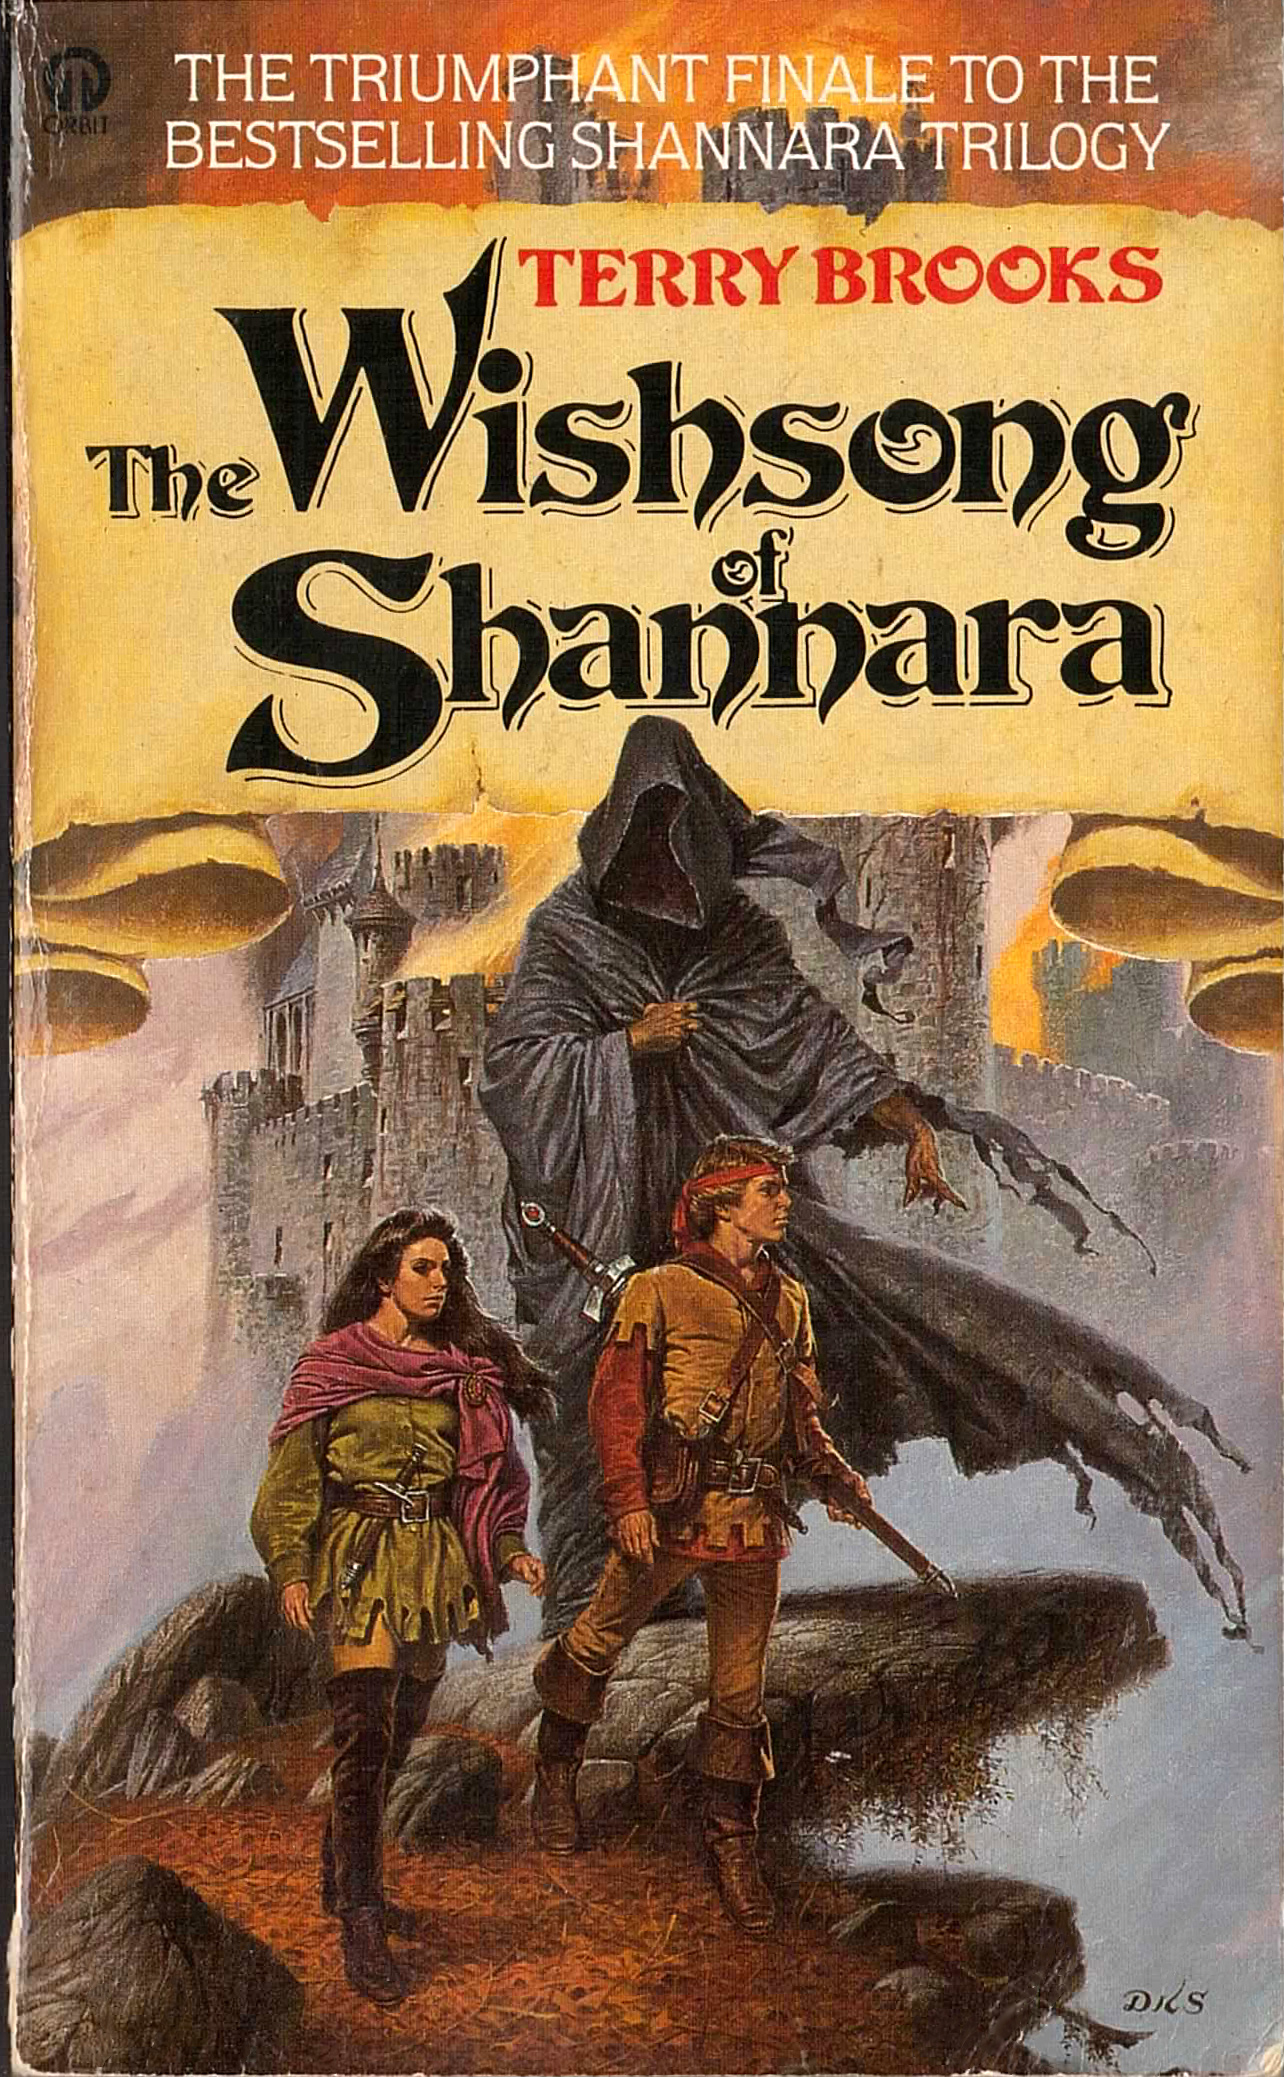 The Wishsong of Shannara